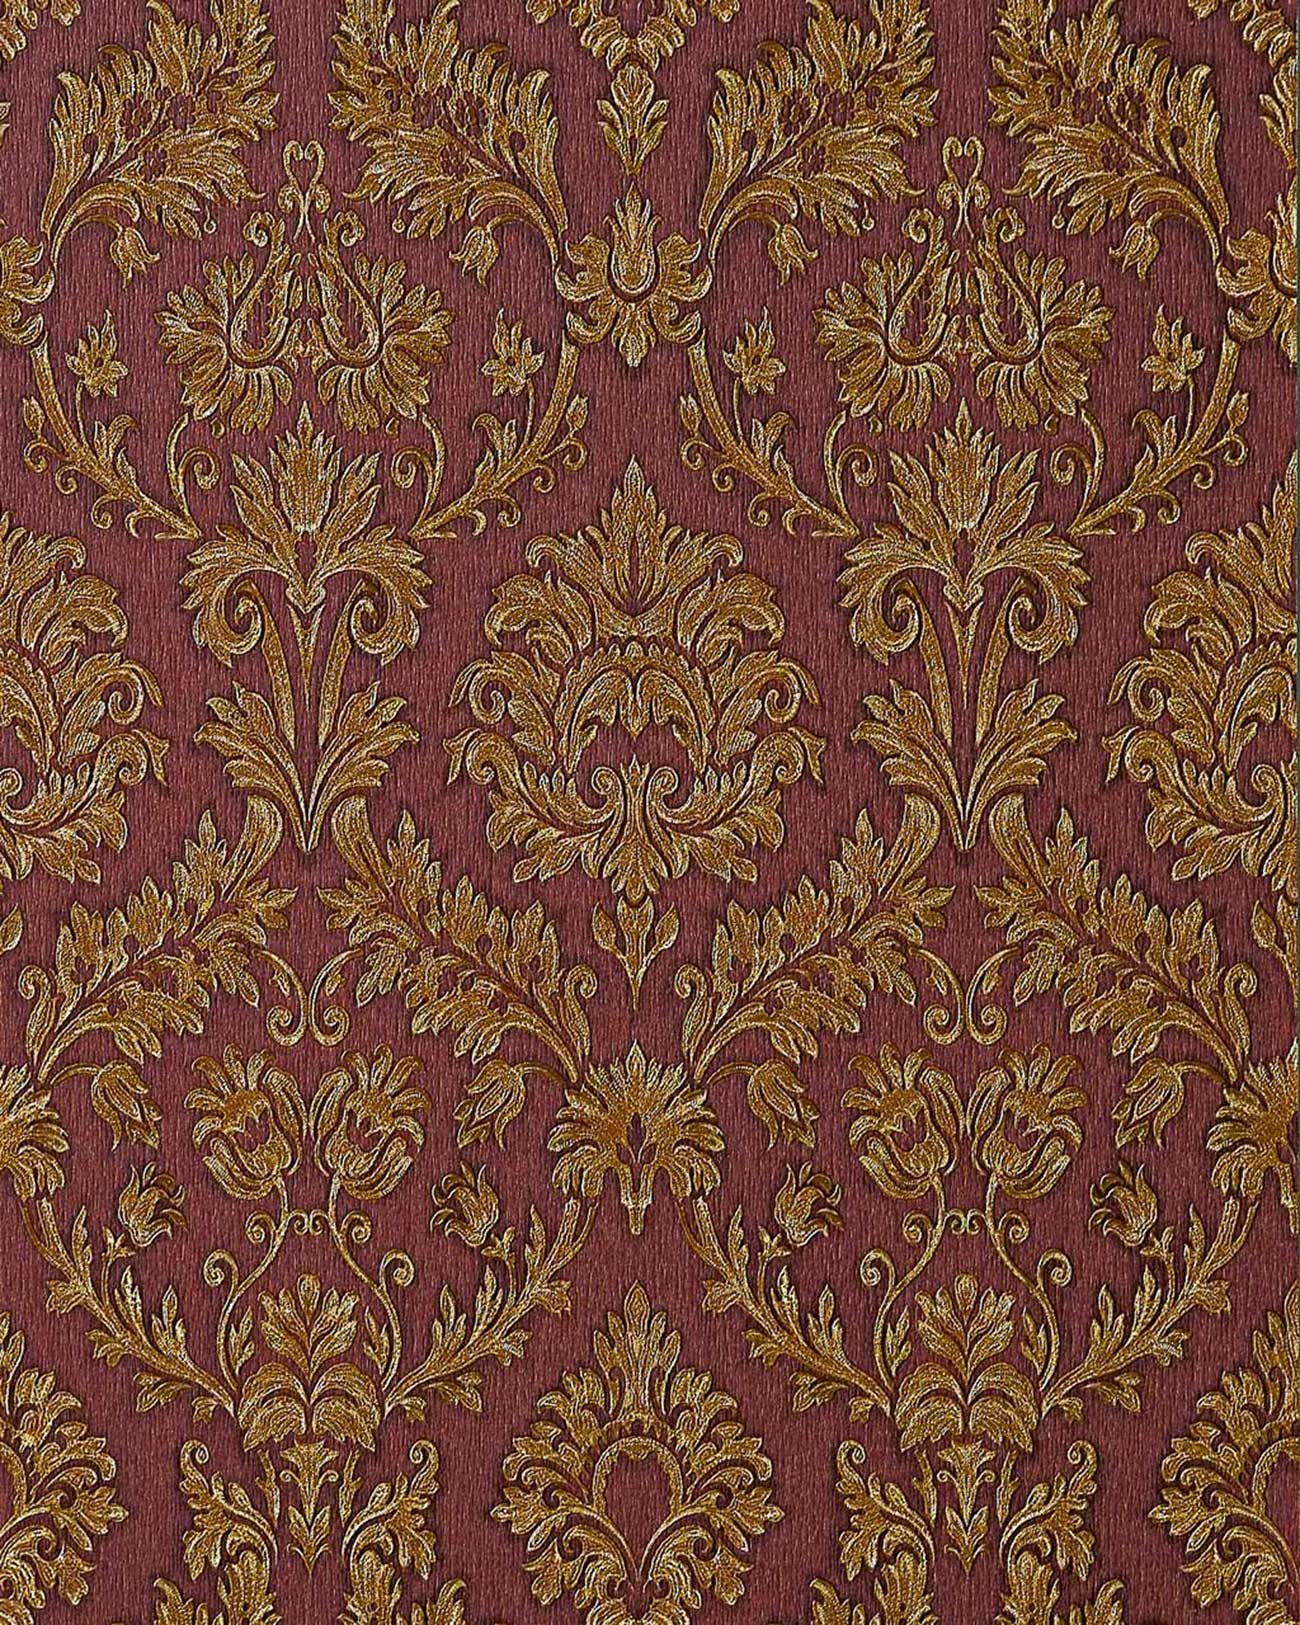 Barock Tapeten Bestseller : Red and Gold Damask Wallpaper